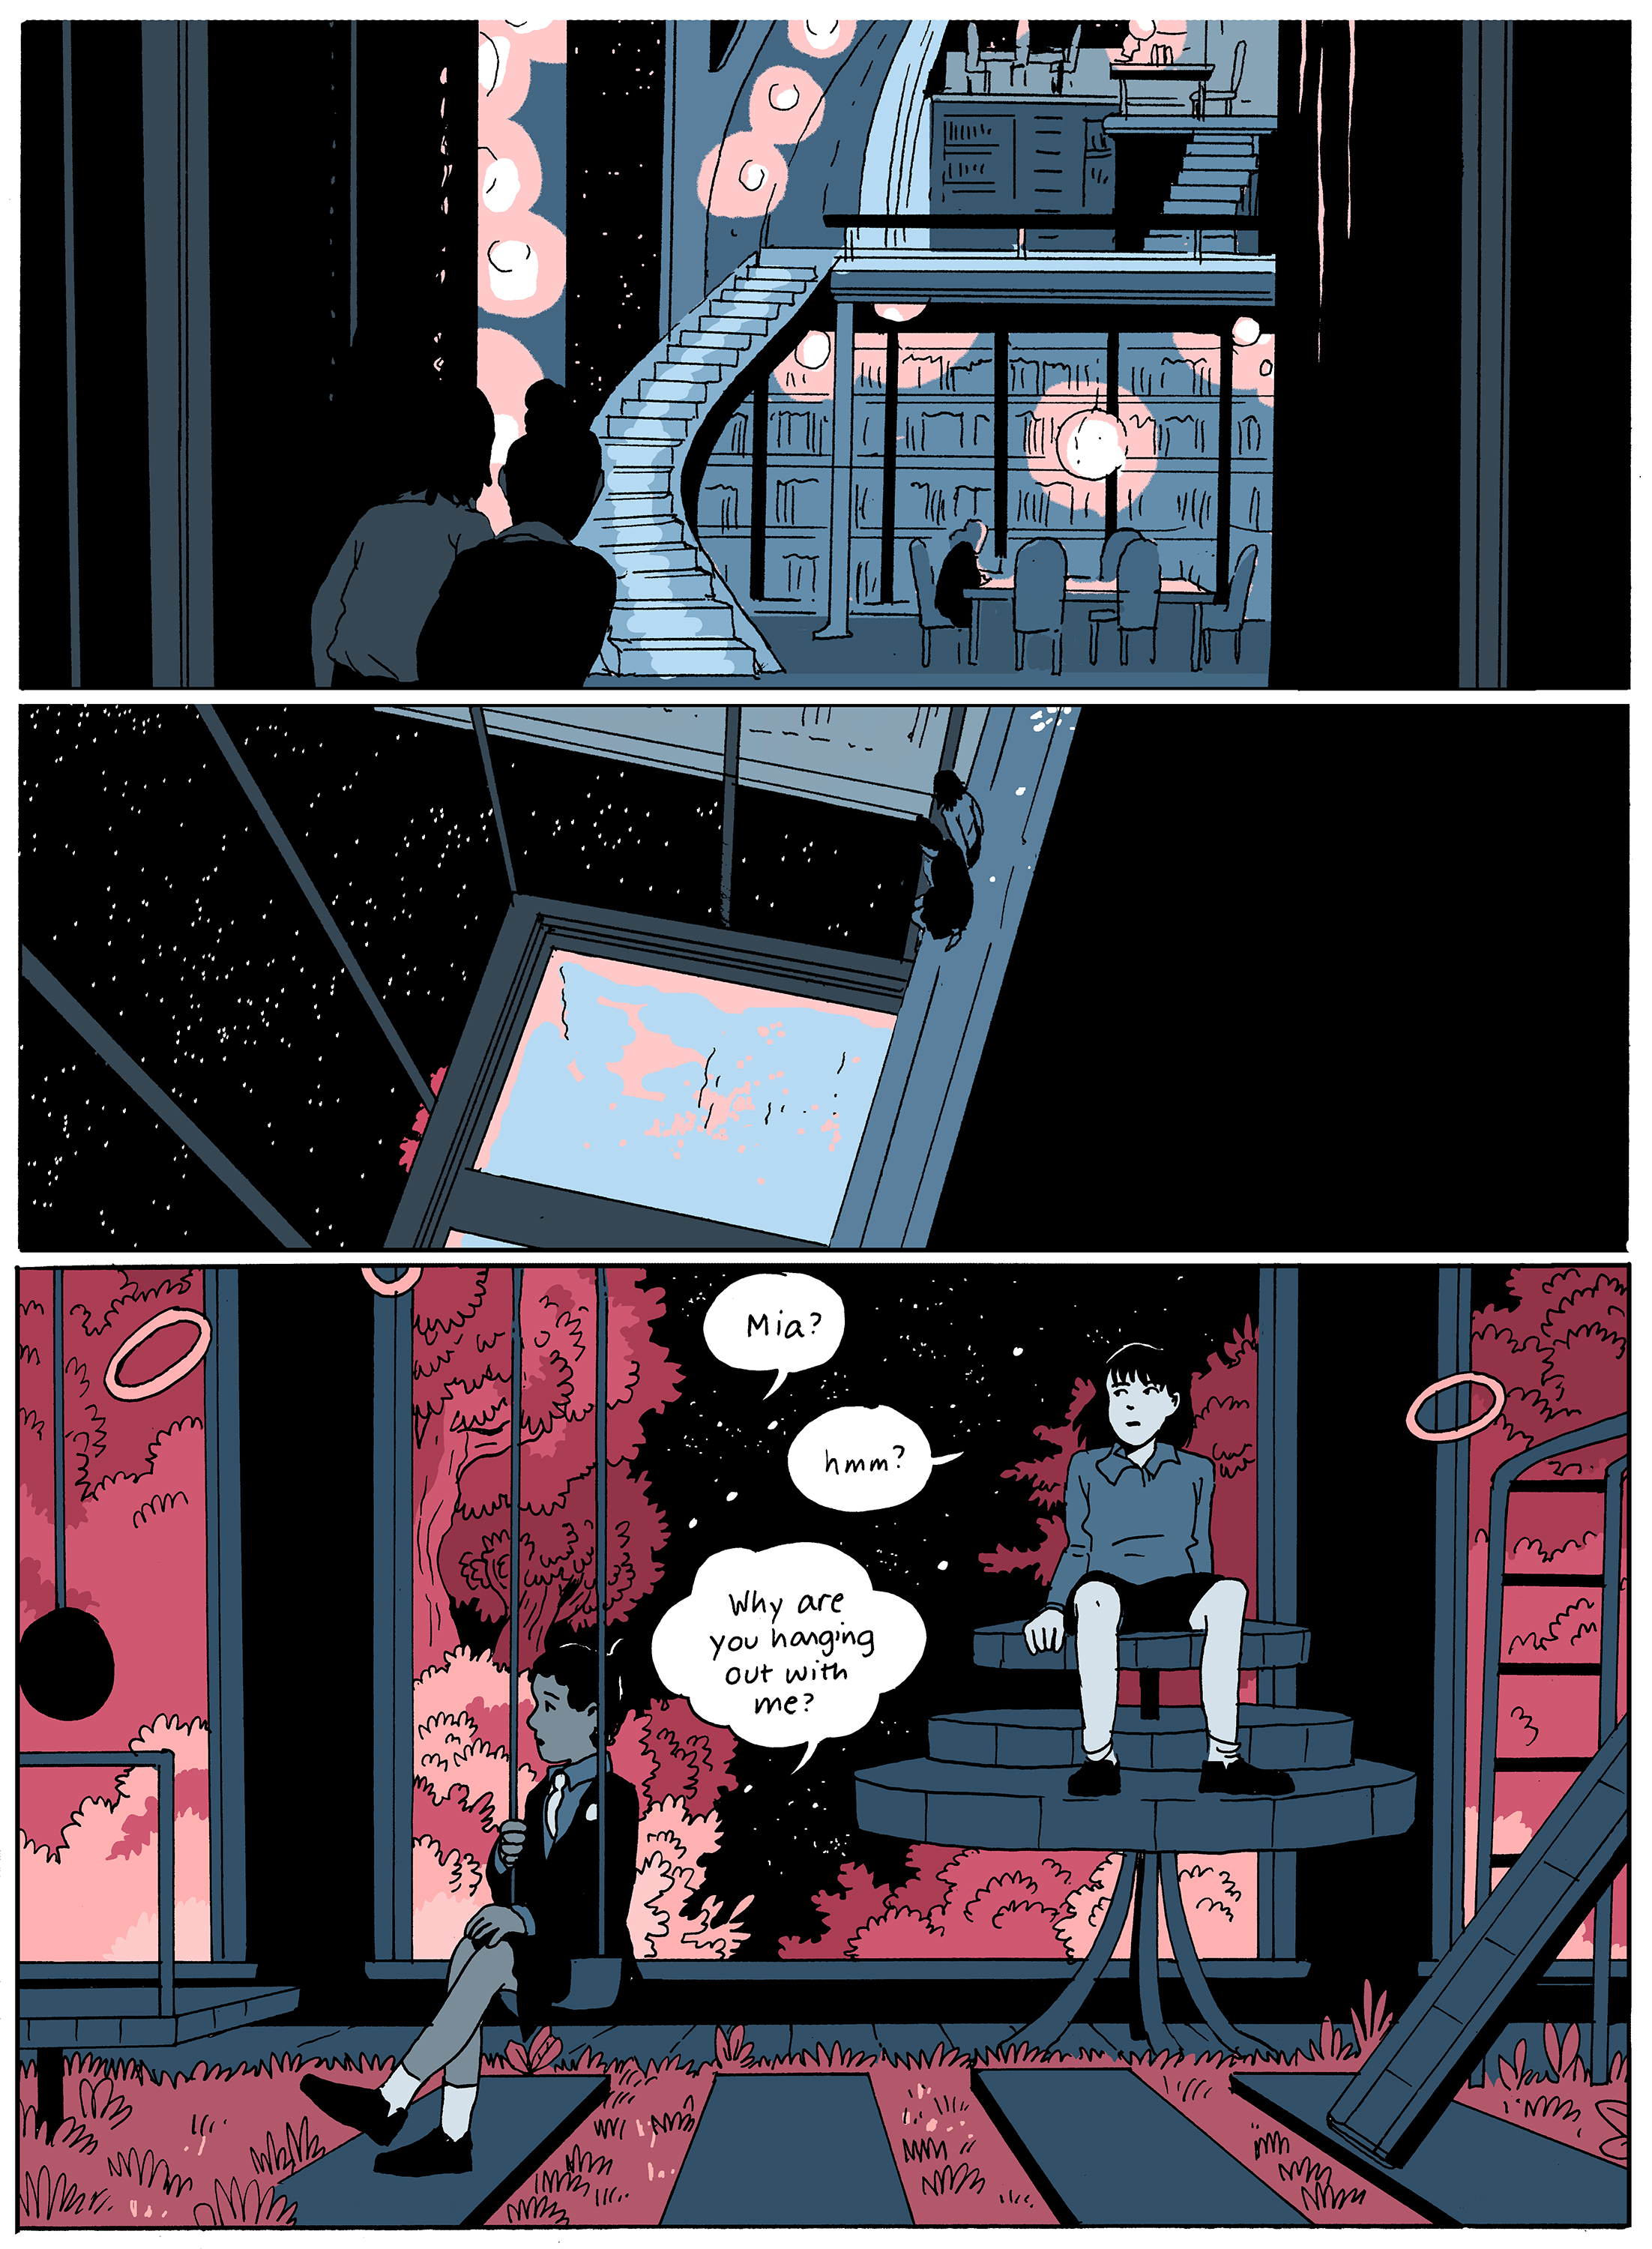 chapter03_page05.jpg